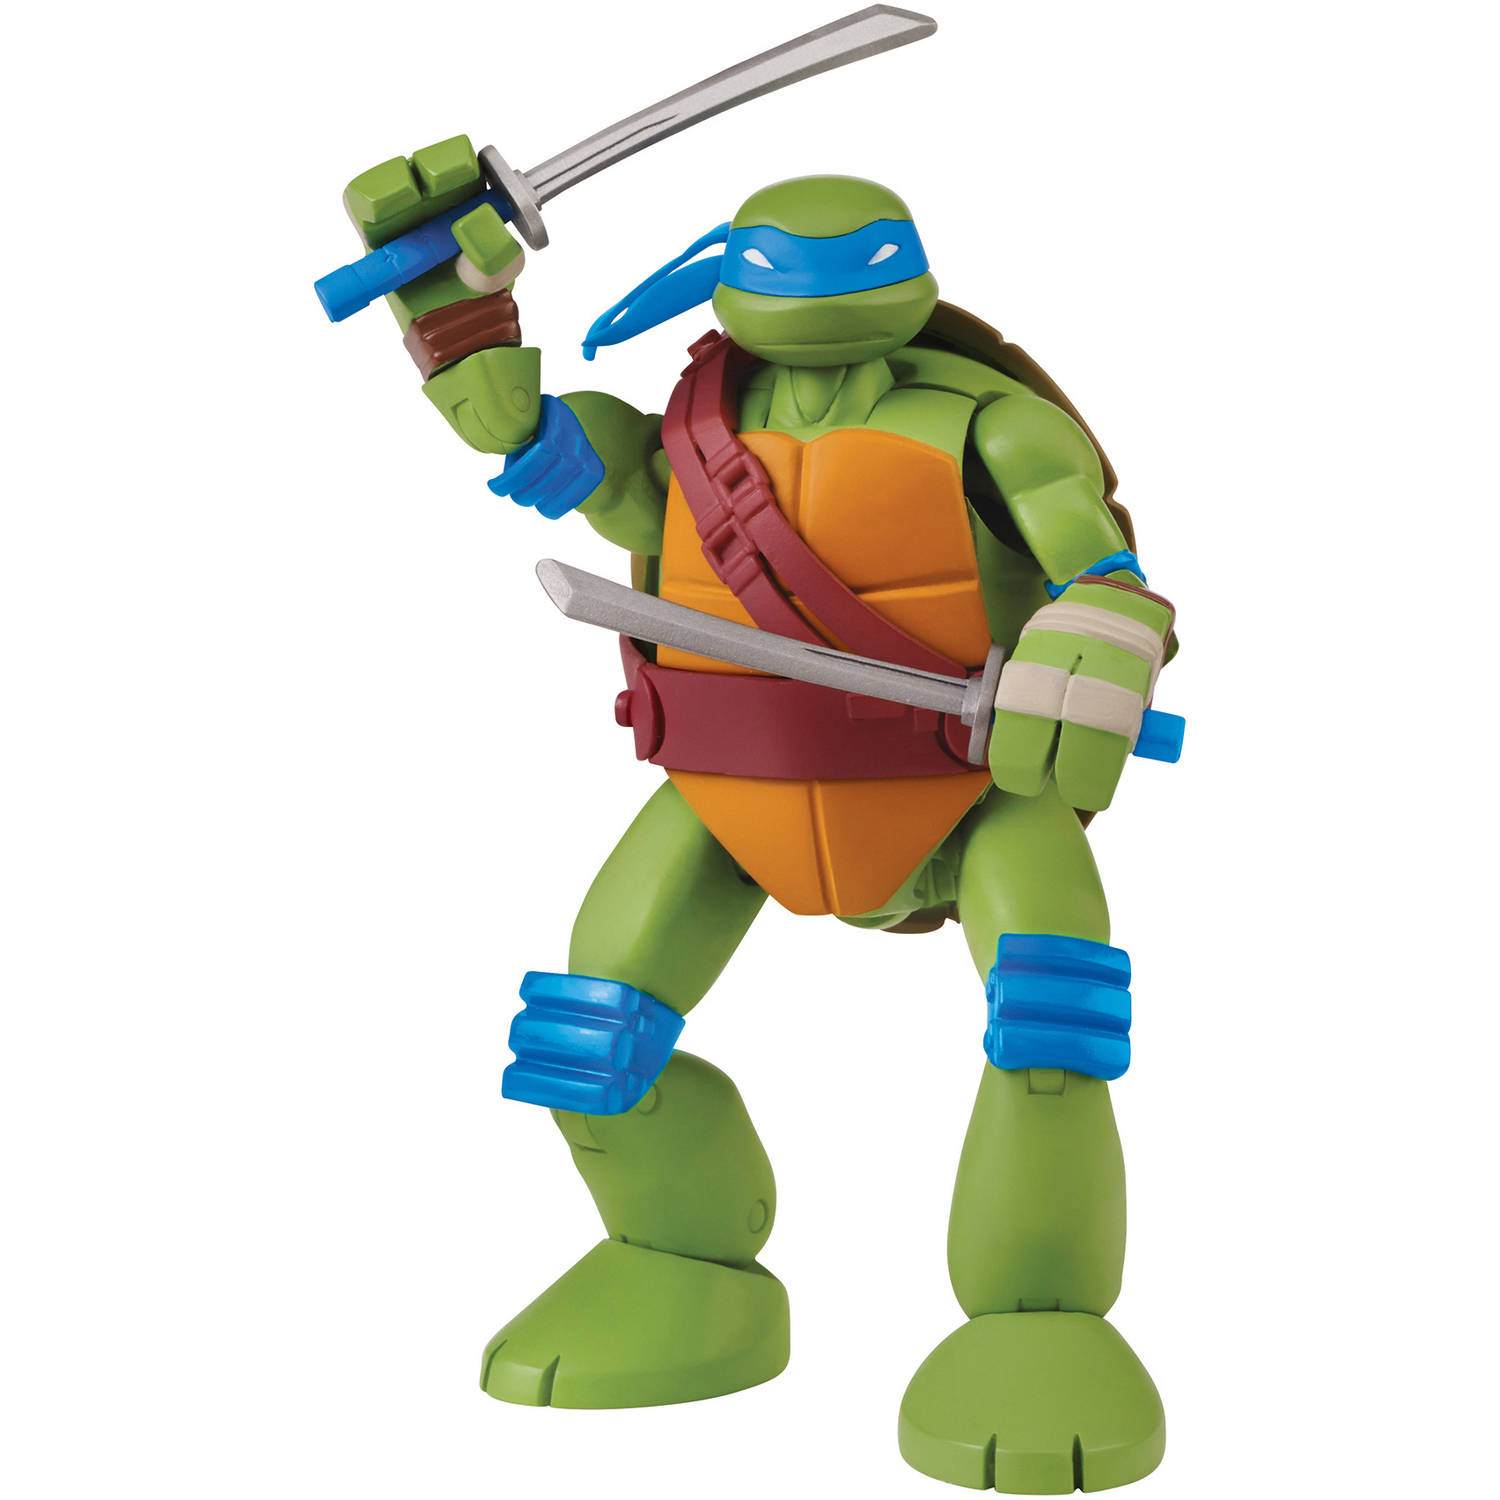 "Nickelodeon Teenage Mutant Ninja Turtles 11"" Pet to Ninja Leonardo"